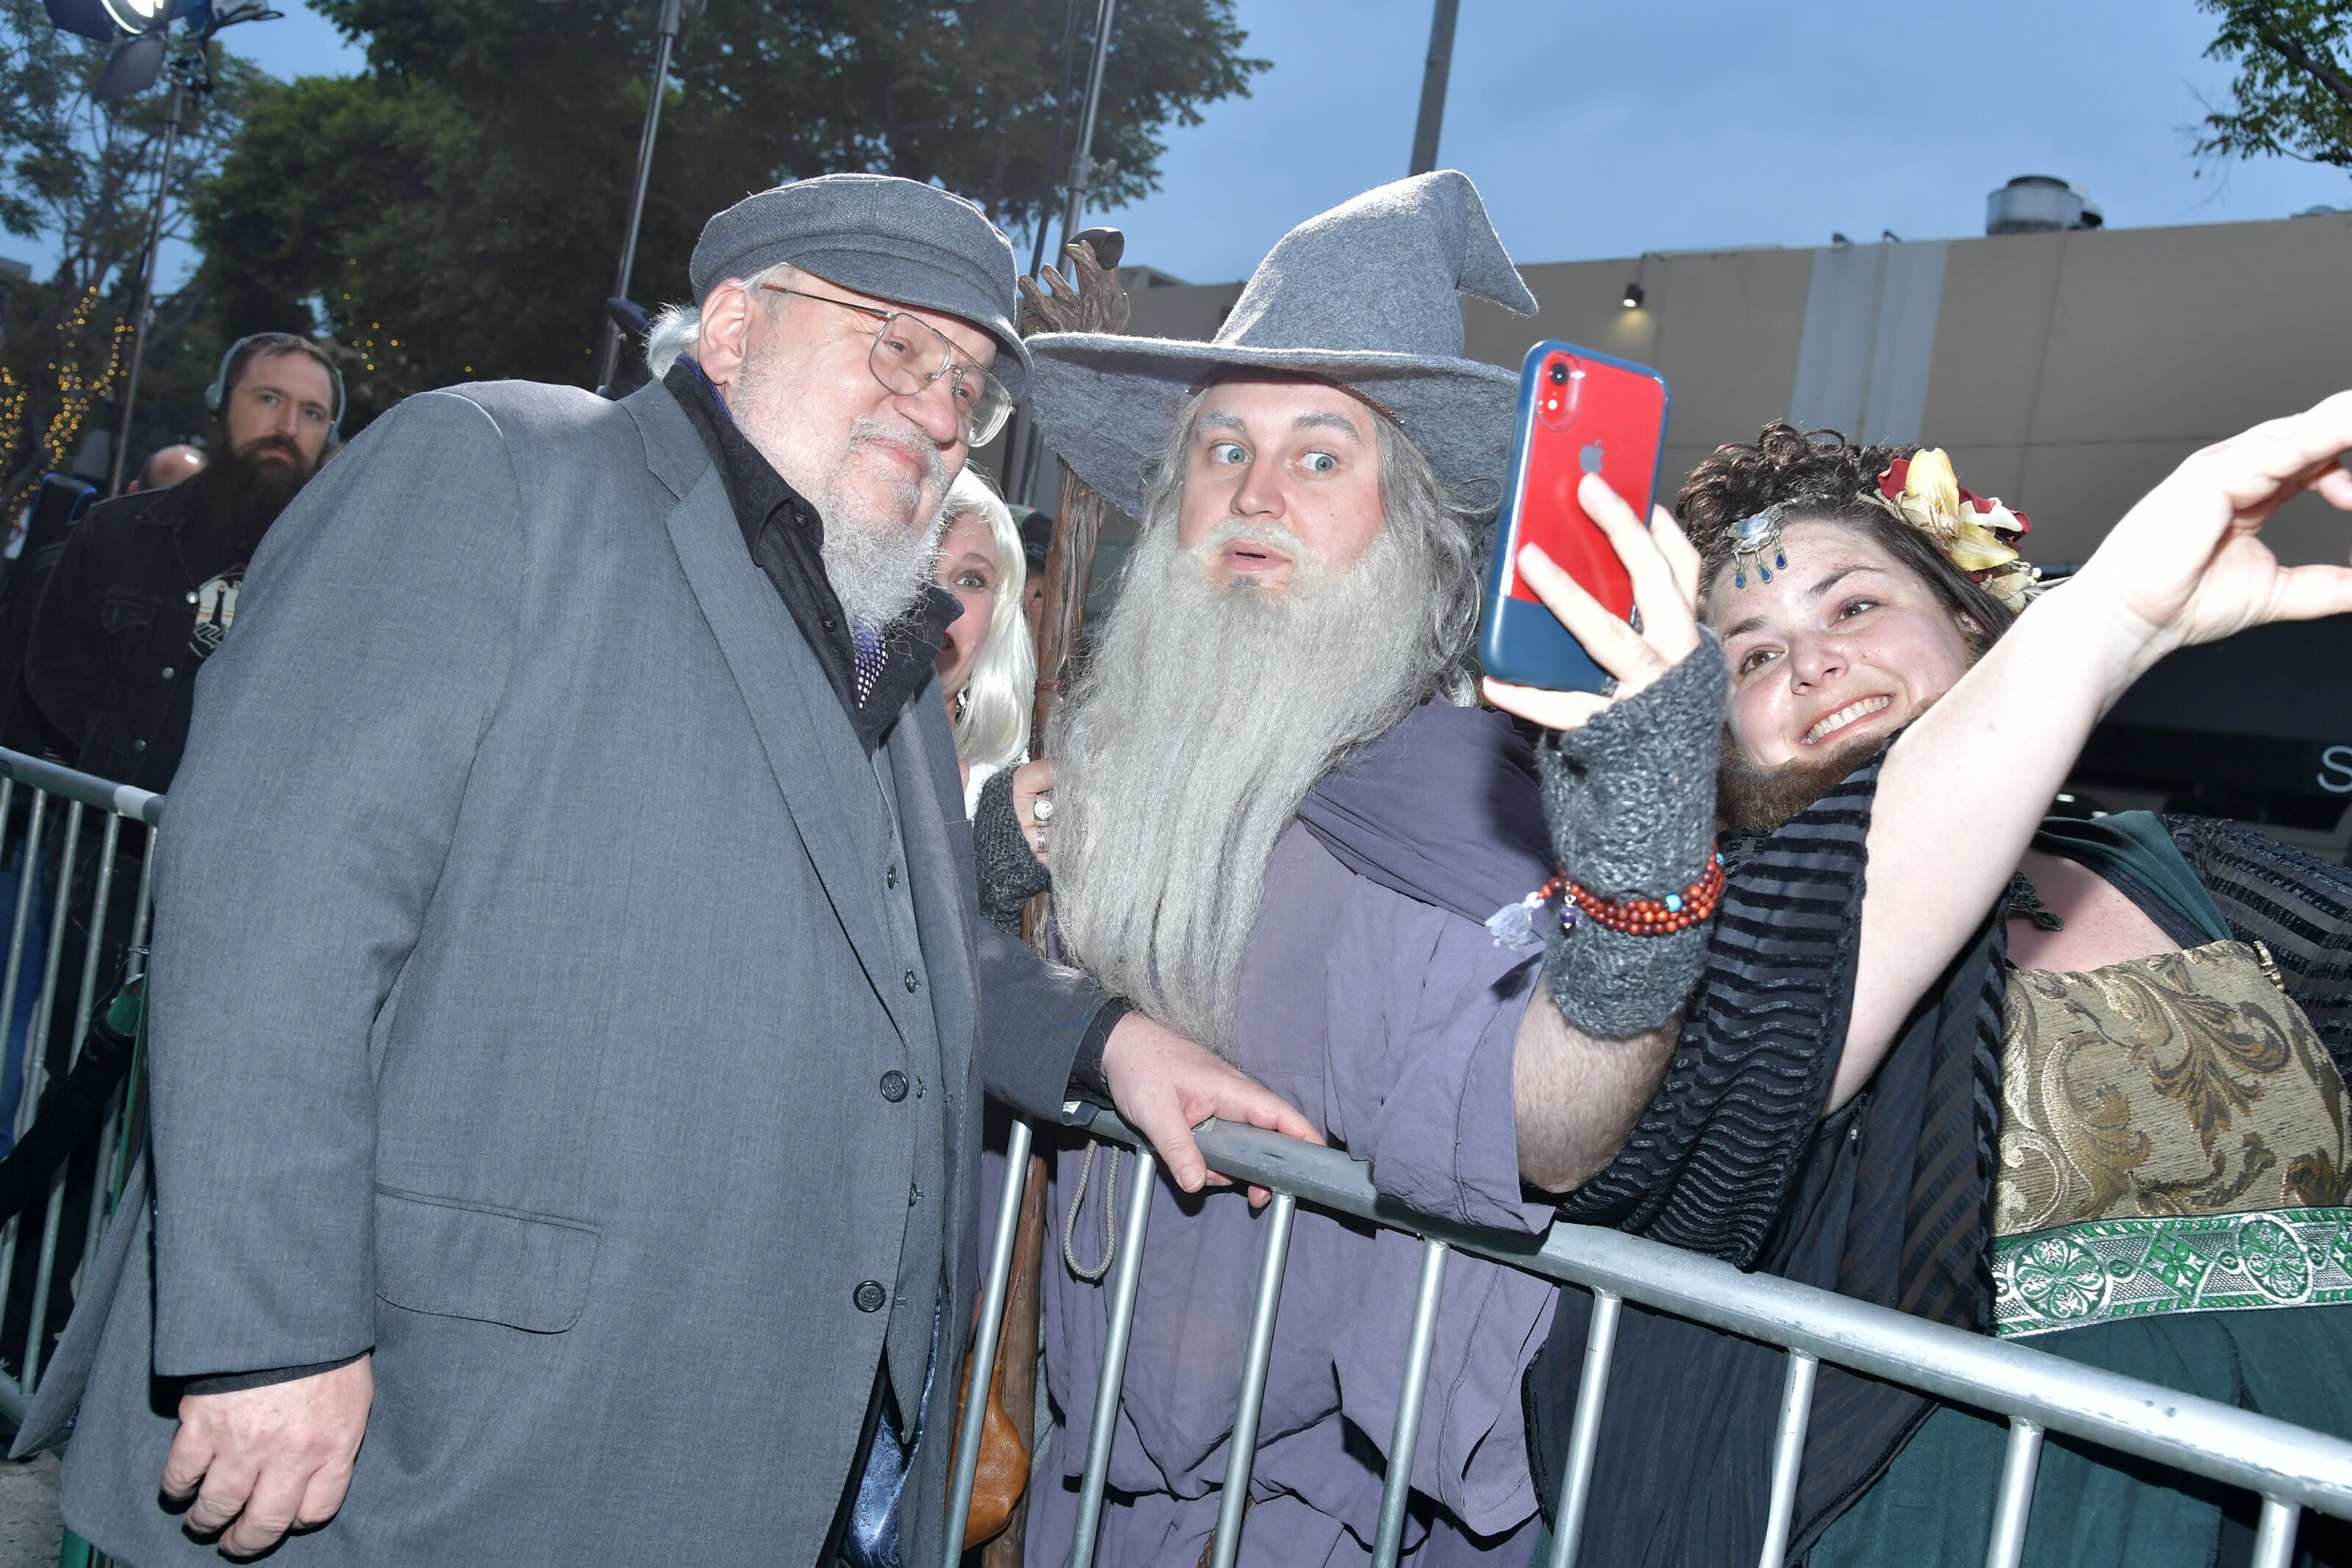 George R.R. Martin returns home after tour of the British Isles